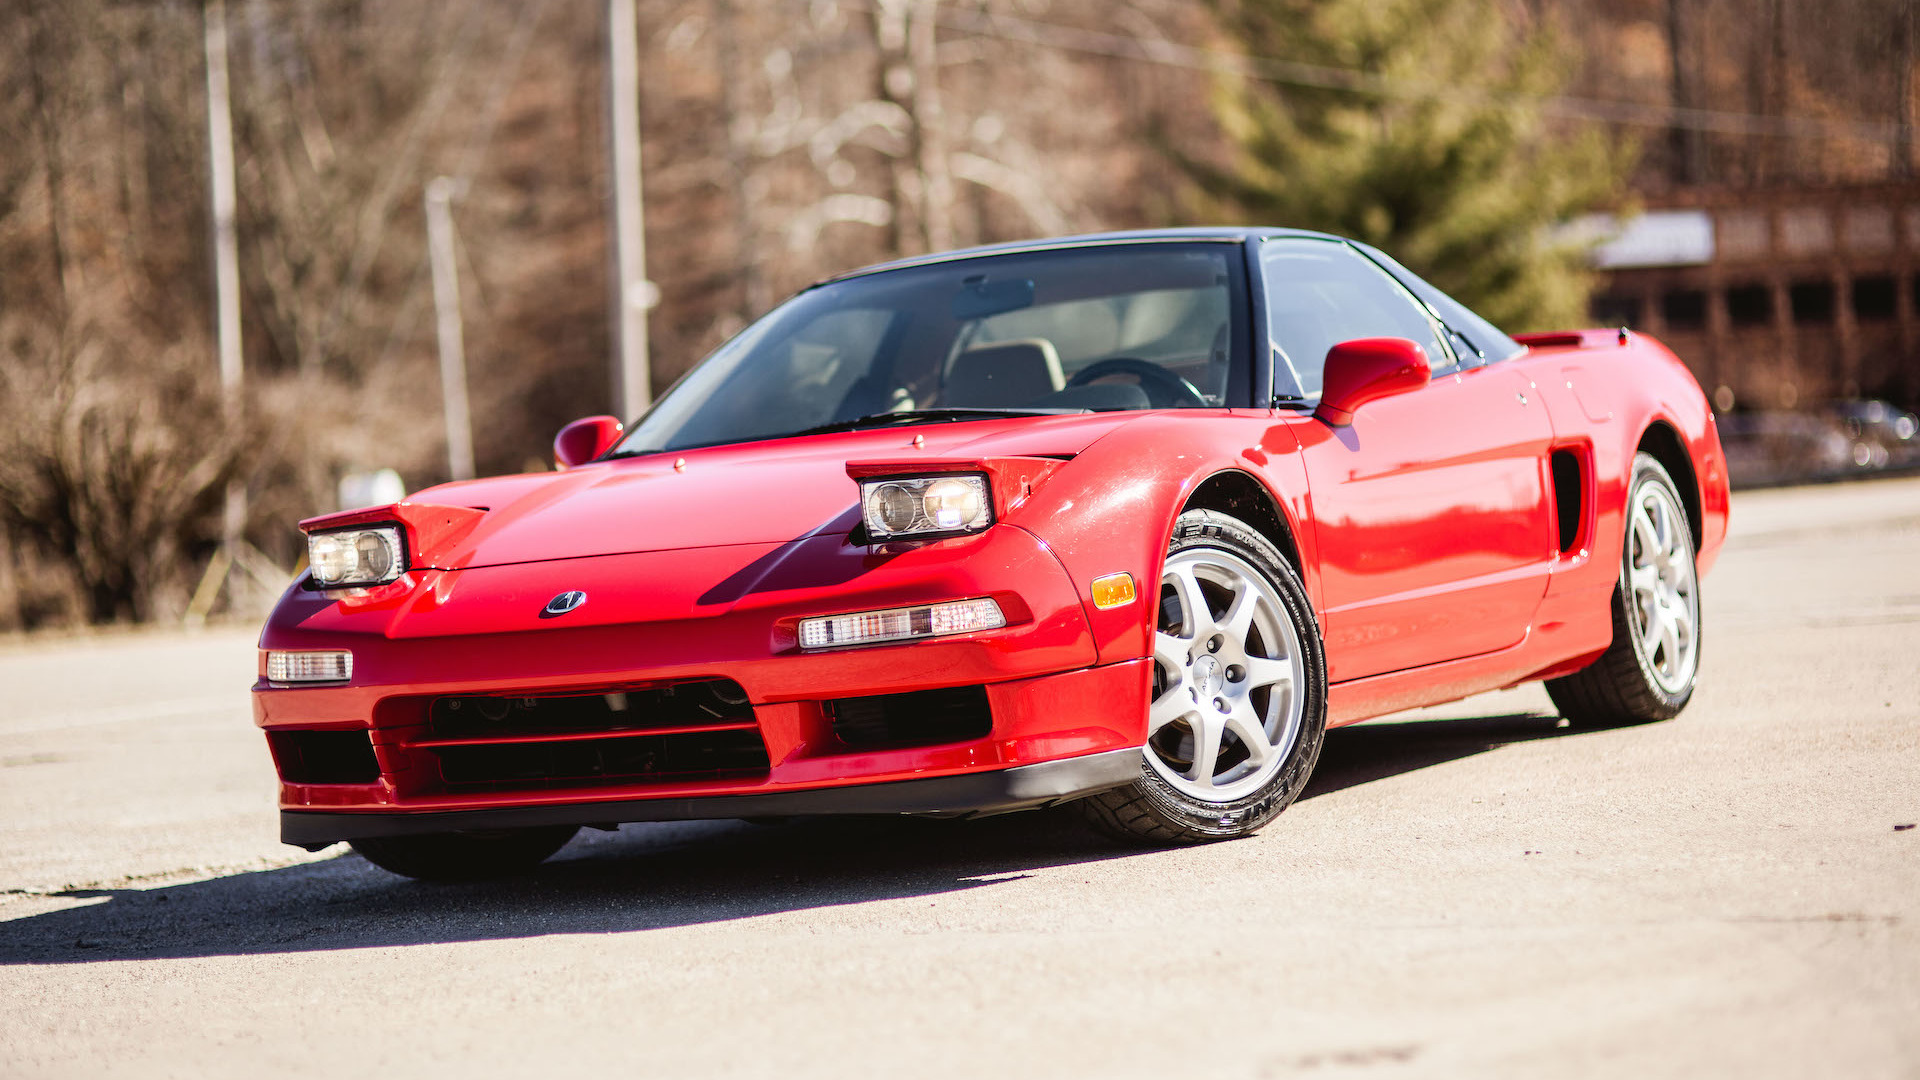 acura nominee to nsx authority buy car h motor best news used